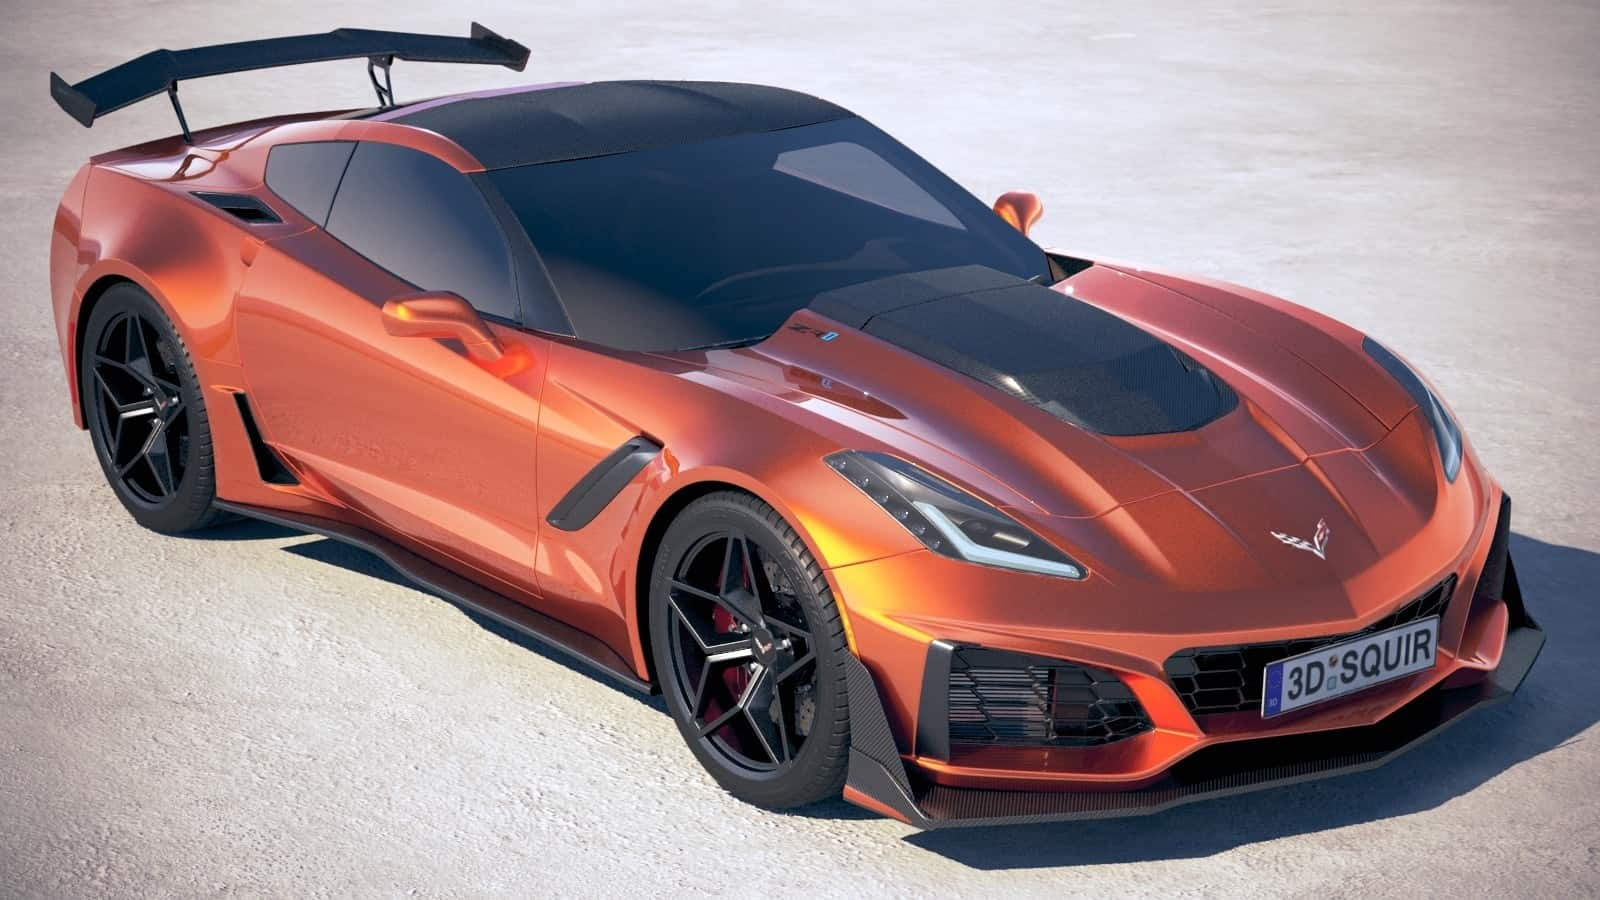 2019 Corvette Zr1 Return Of The King Indo Canadian Voice